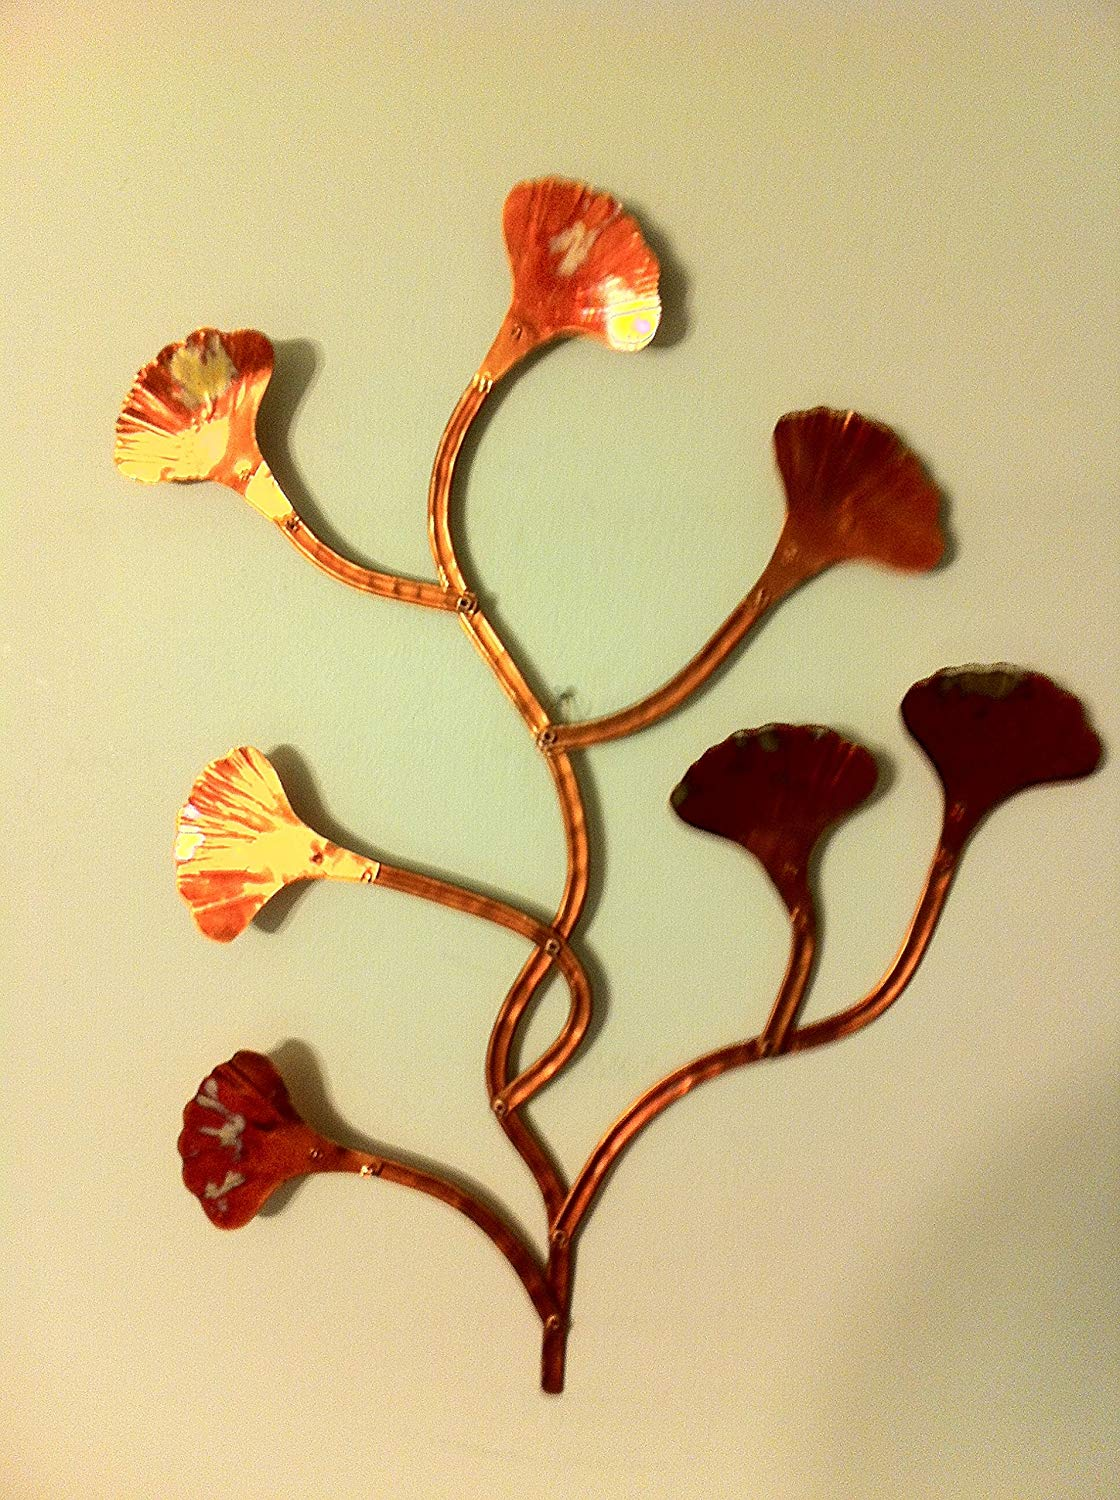 SPECIAL SALE !!!! 30.00 each OR 2 for 40.00!!!! Small Hand Made Copper Ginkgo Wall Hang